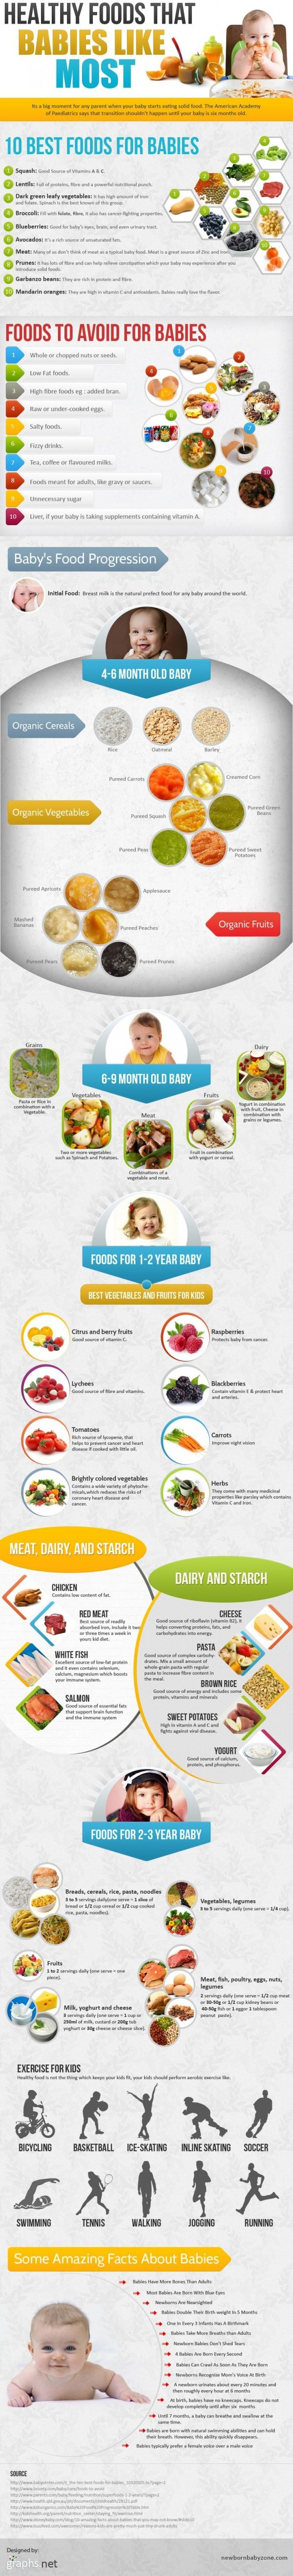 Best Foods For Baby